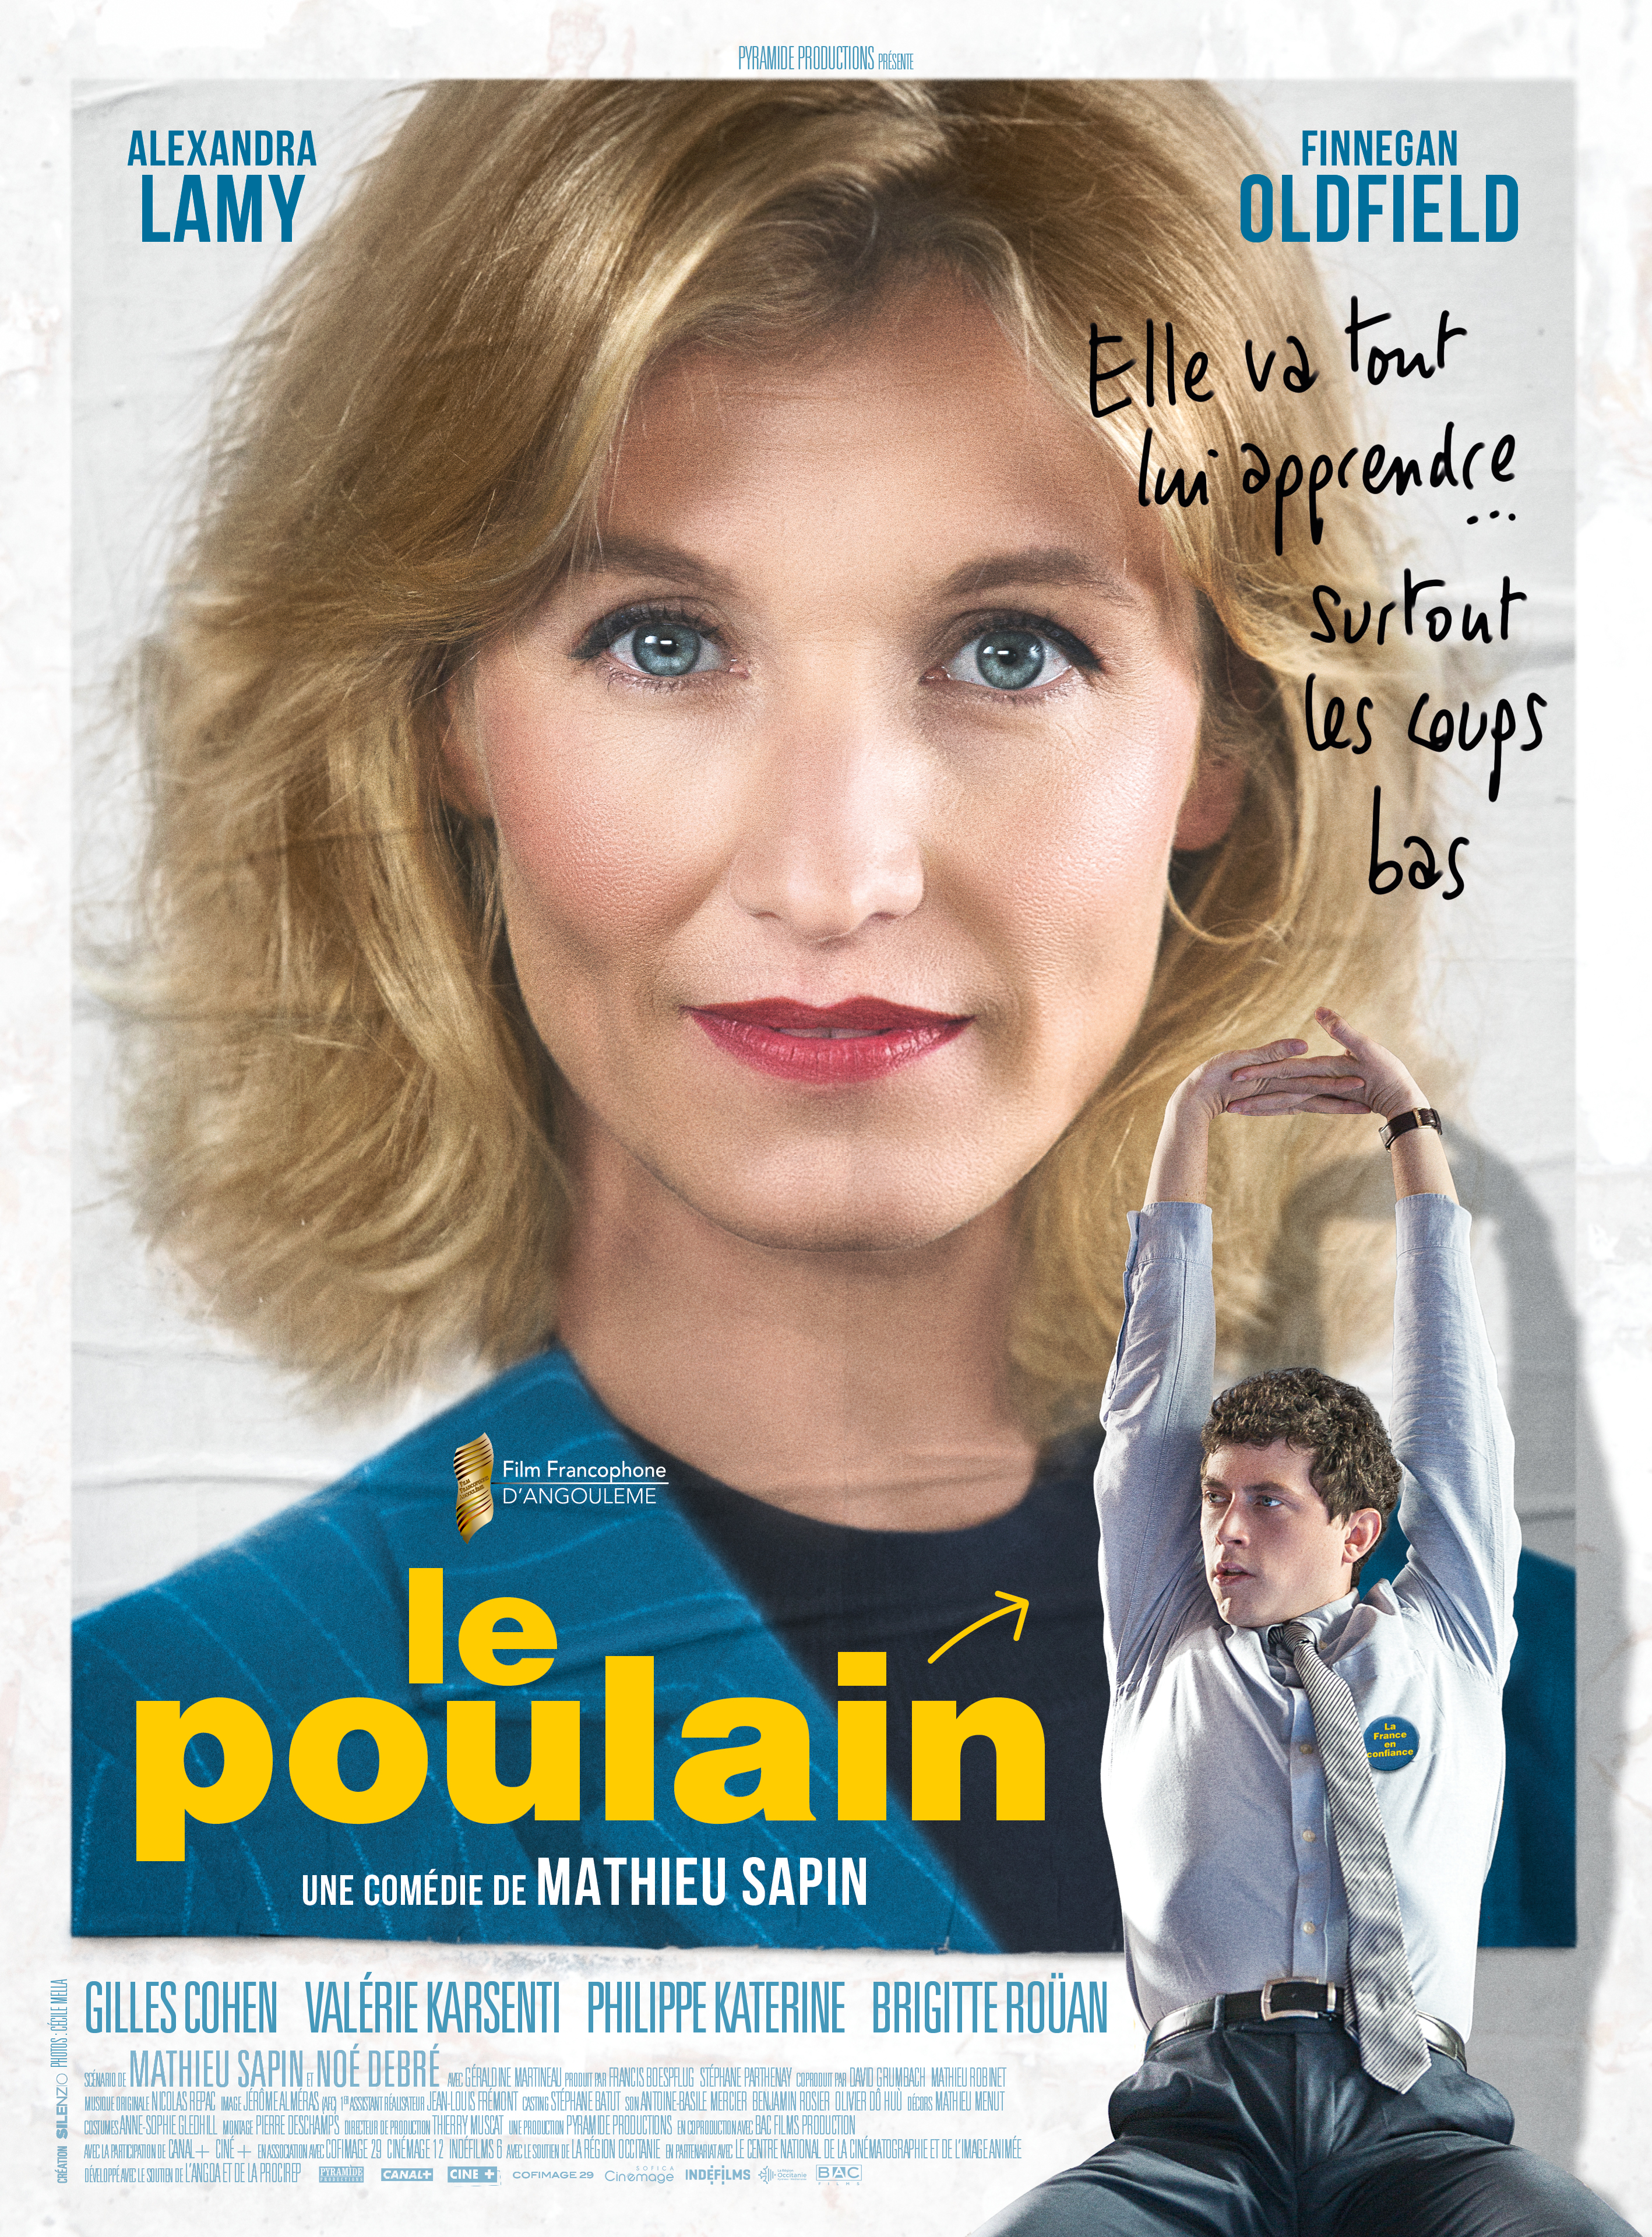 Le Poulain Eclair Cinema Post Production Alexandra Lamy